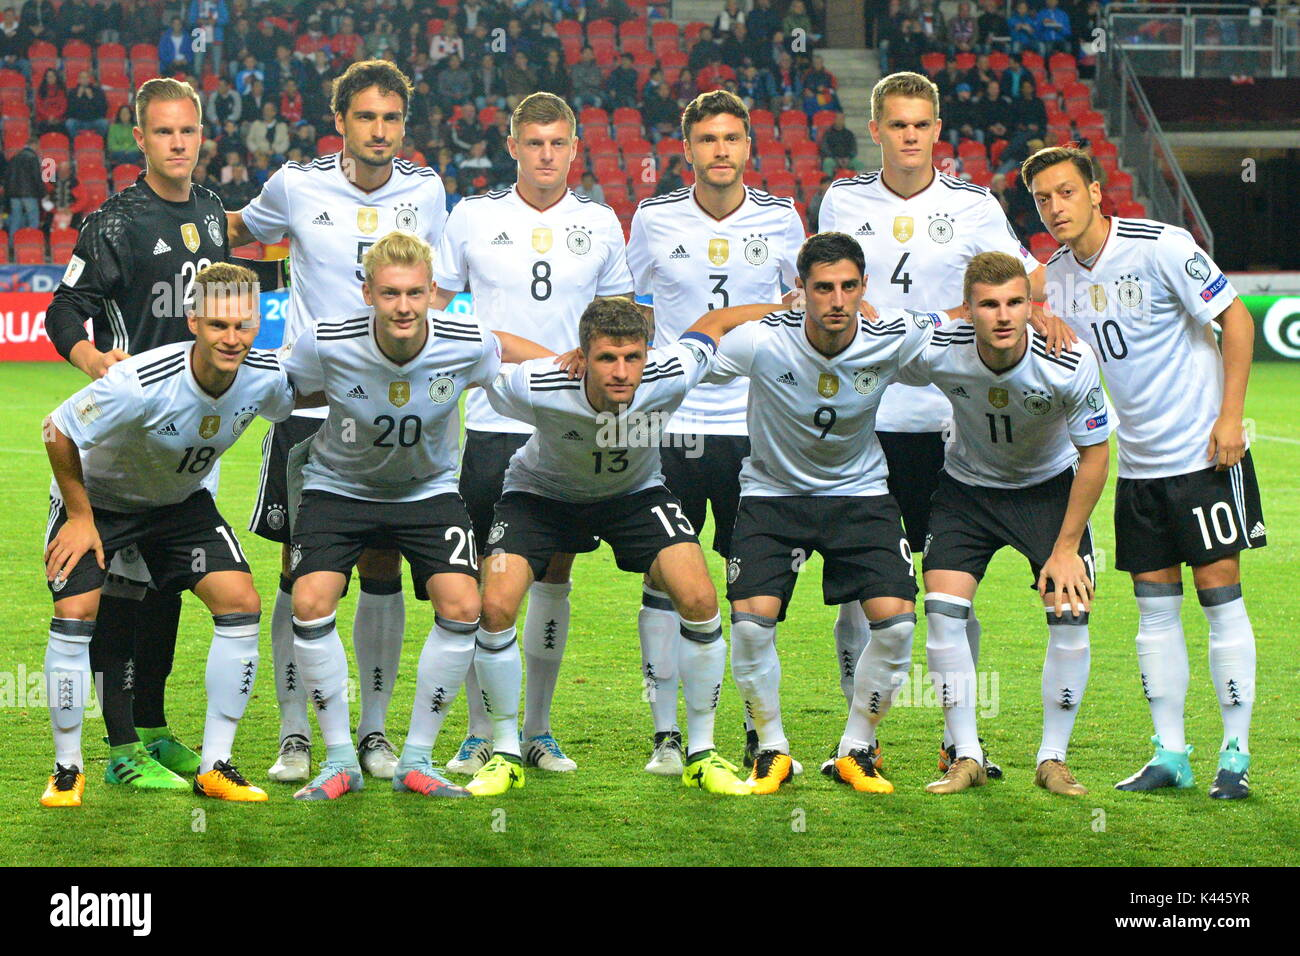 National Team Germany Stock Photos & National Team Germany Stock Images - Alamy